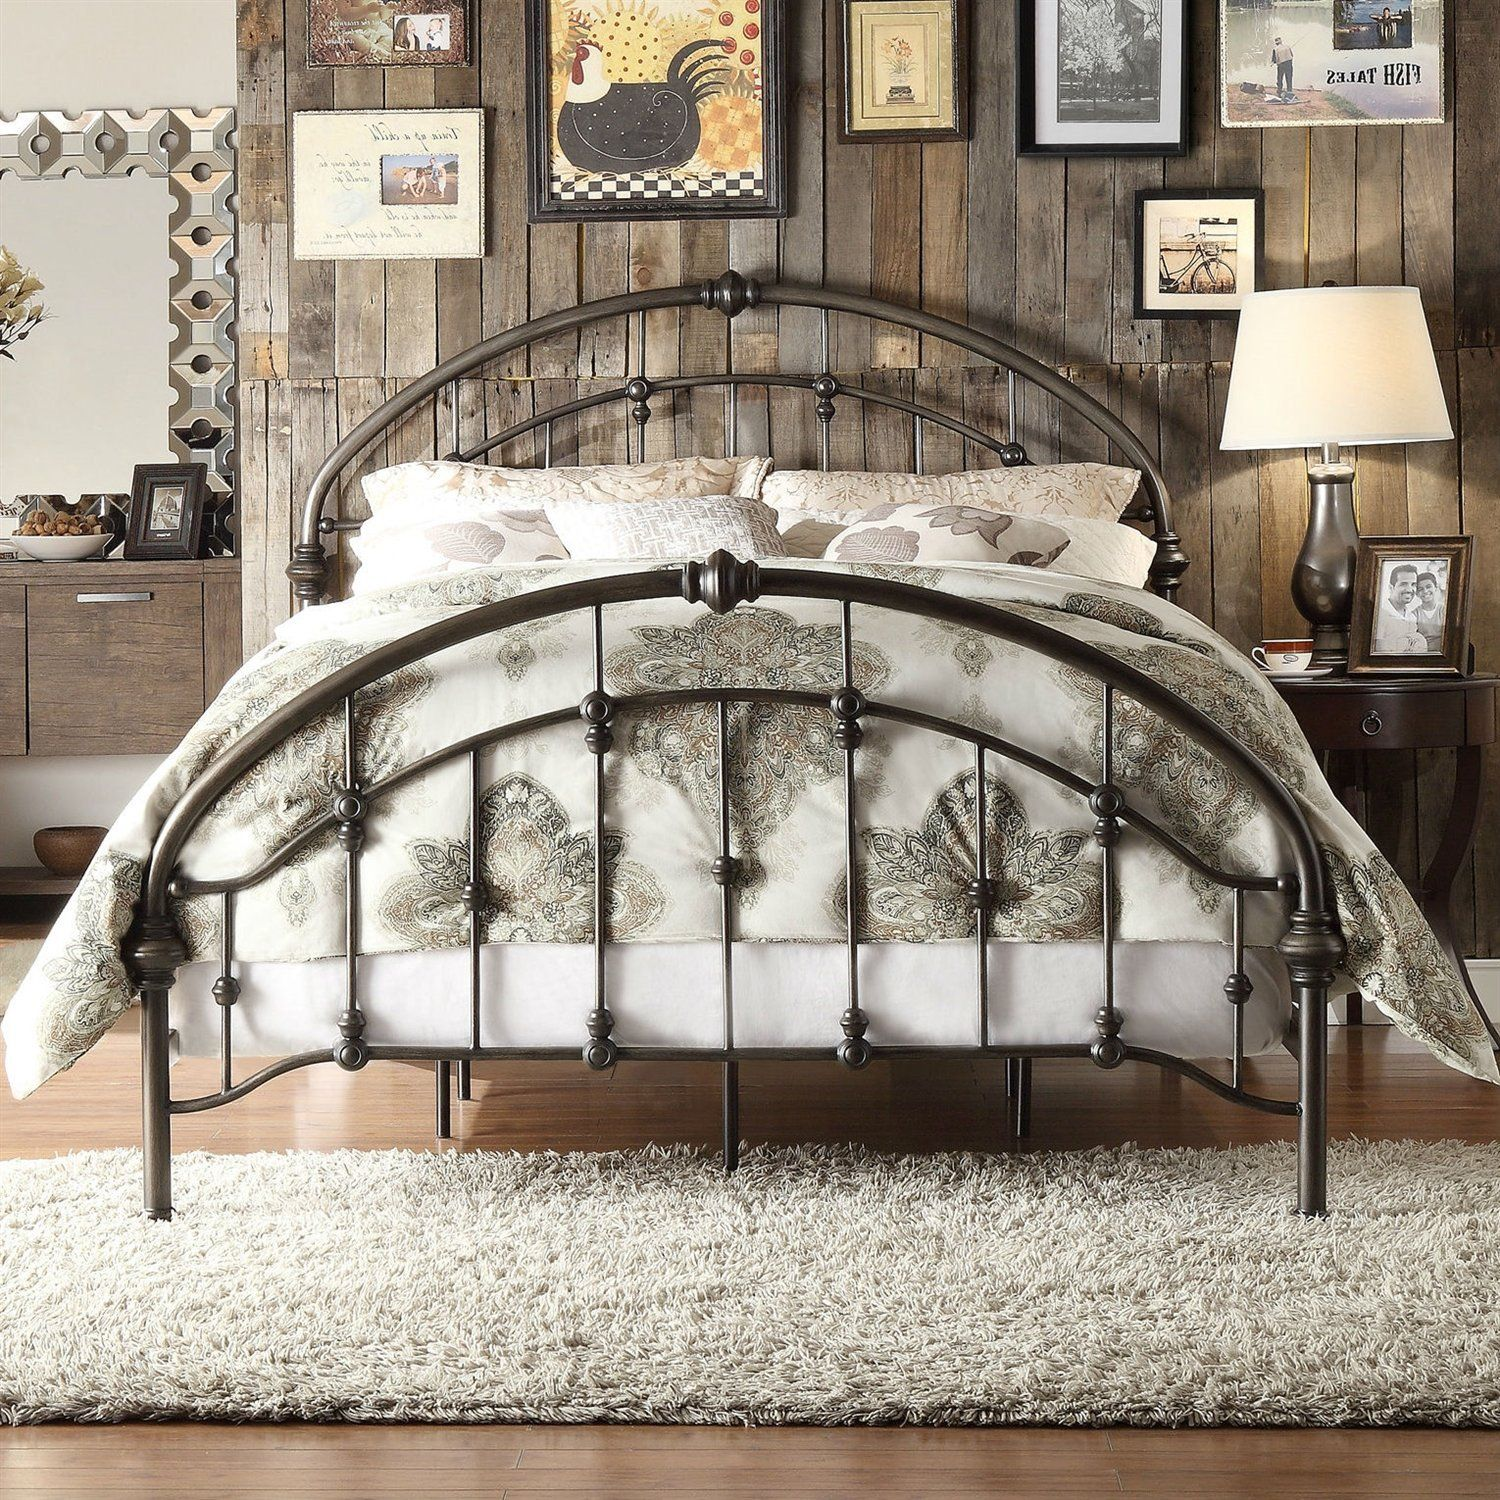 King size Antique Dark Bronze Metal Bed with Arch